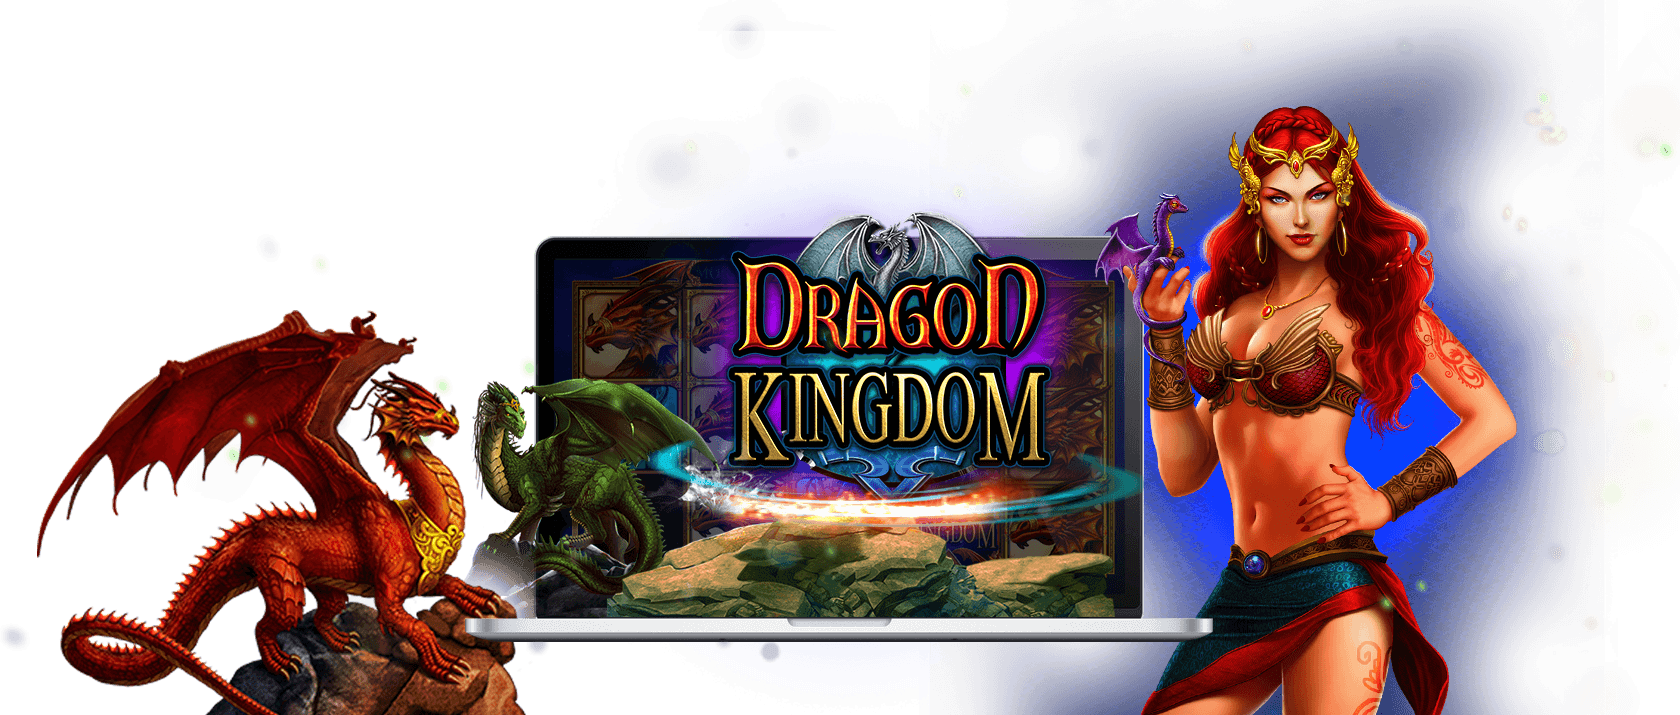 dragon kingdom slots game logo